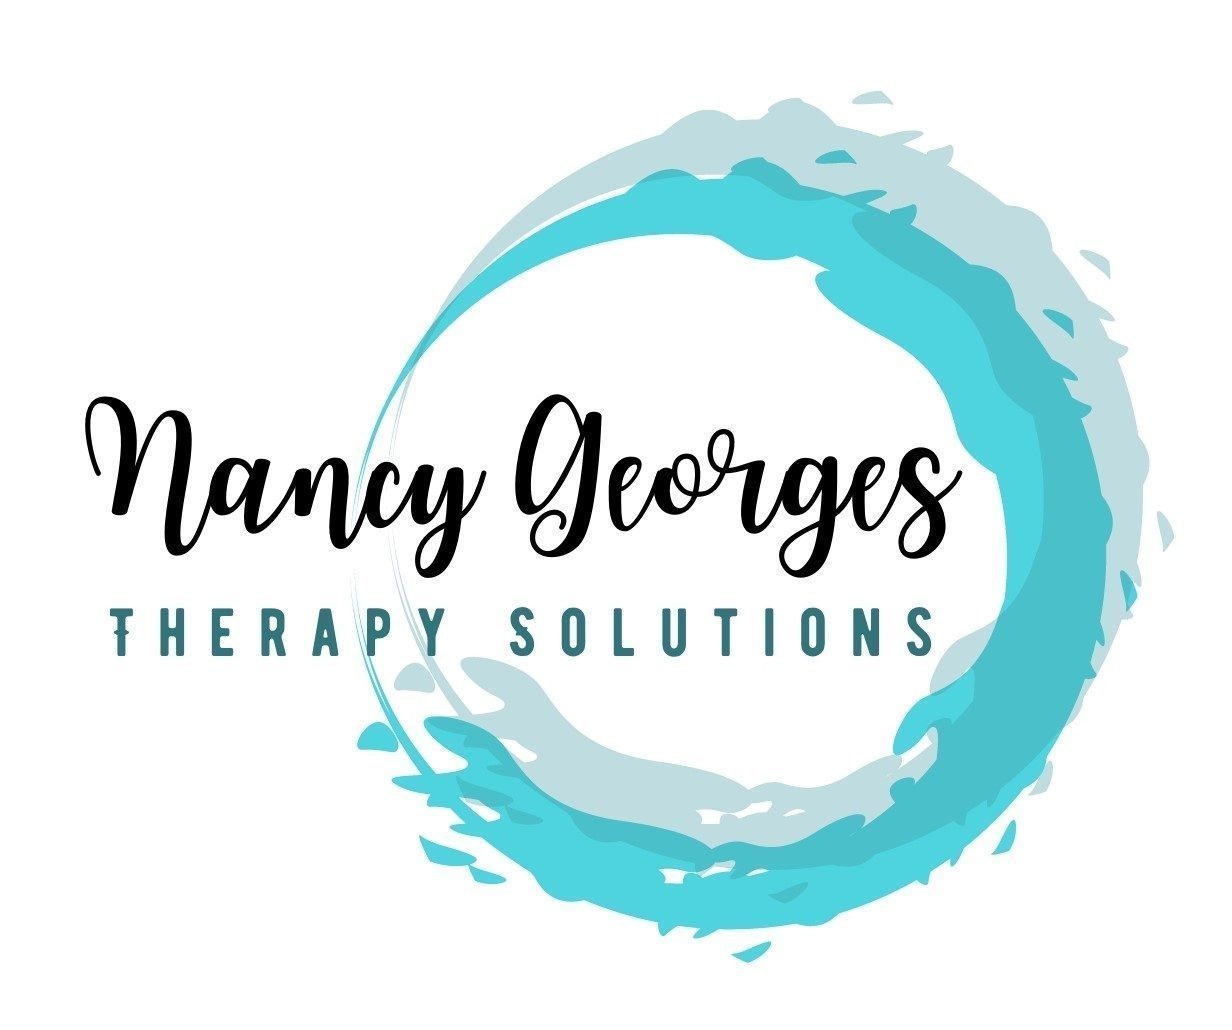 Nancy Georges Therapy Solutions – LMFT Couples Counseling and Individual Therapy in Sacramento